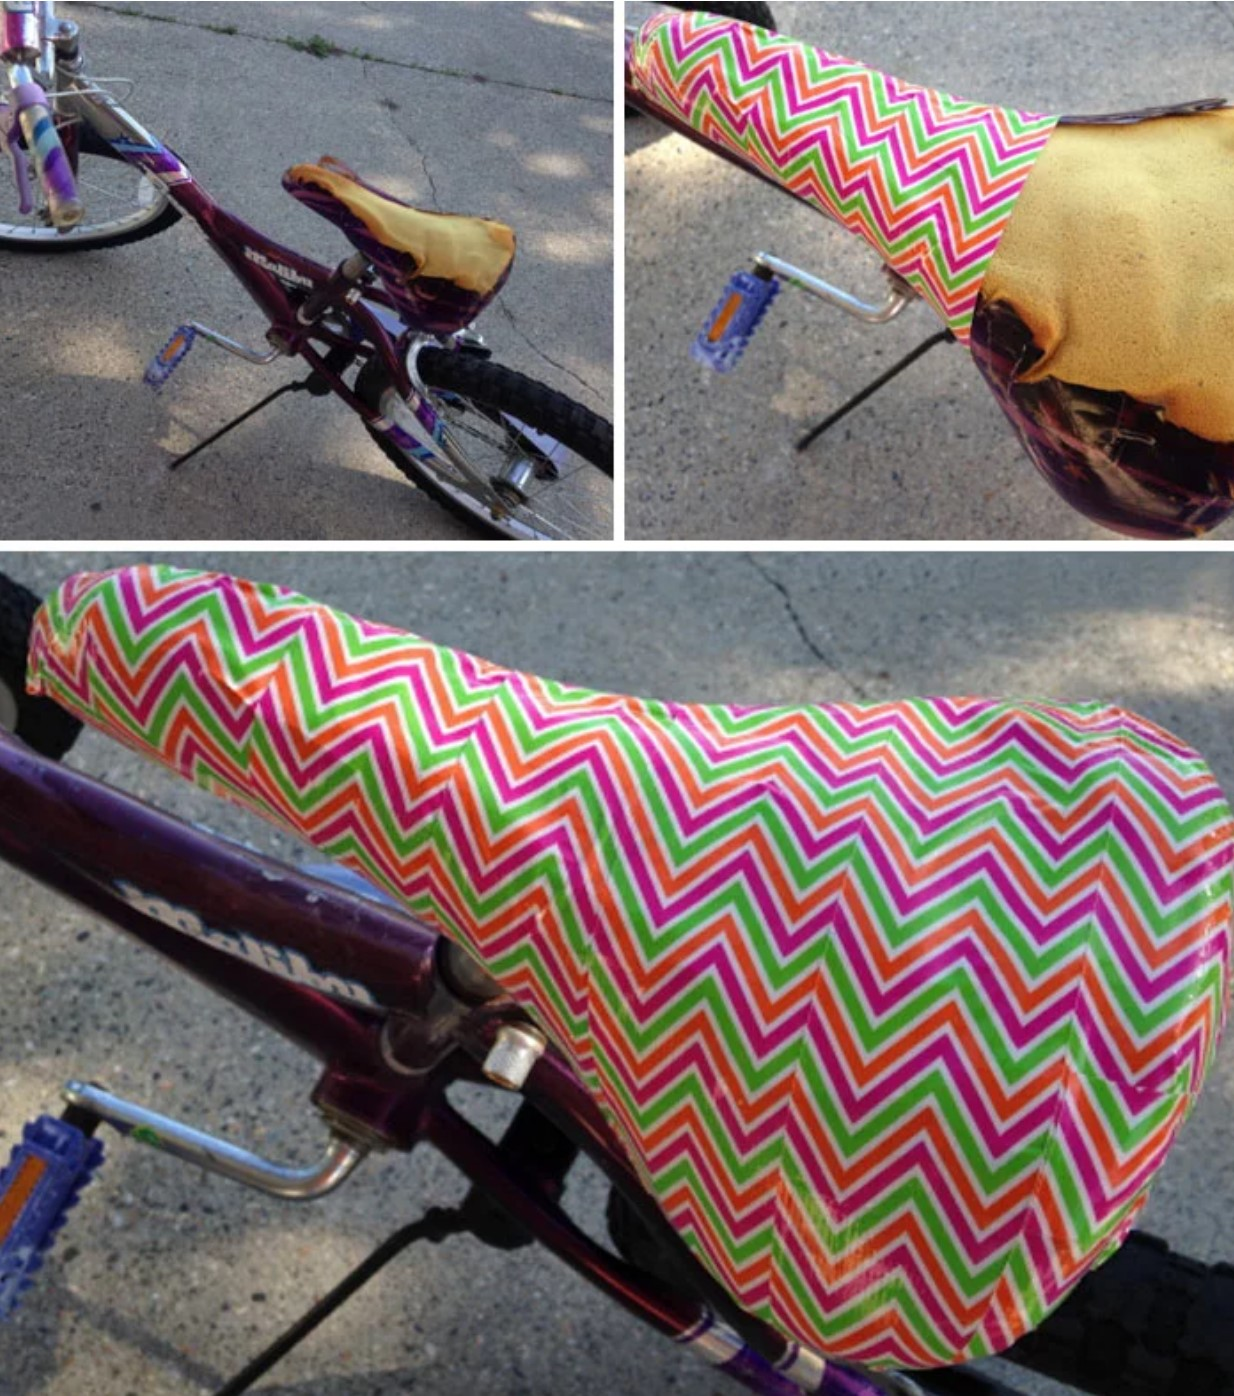 Bicycle seat lined with tape